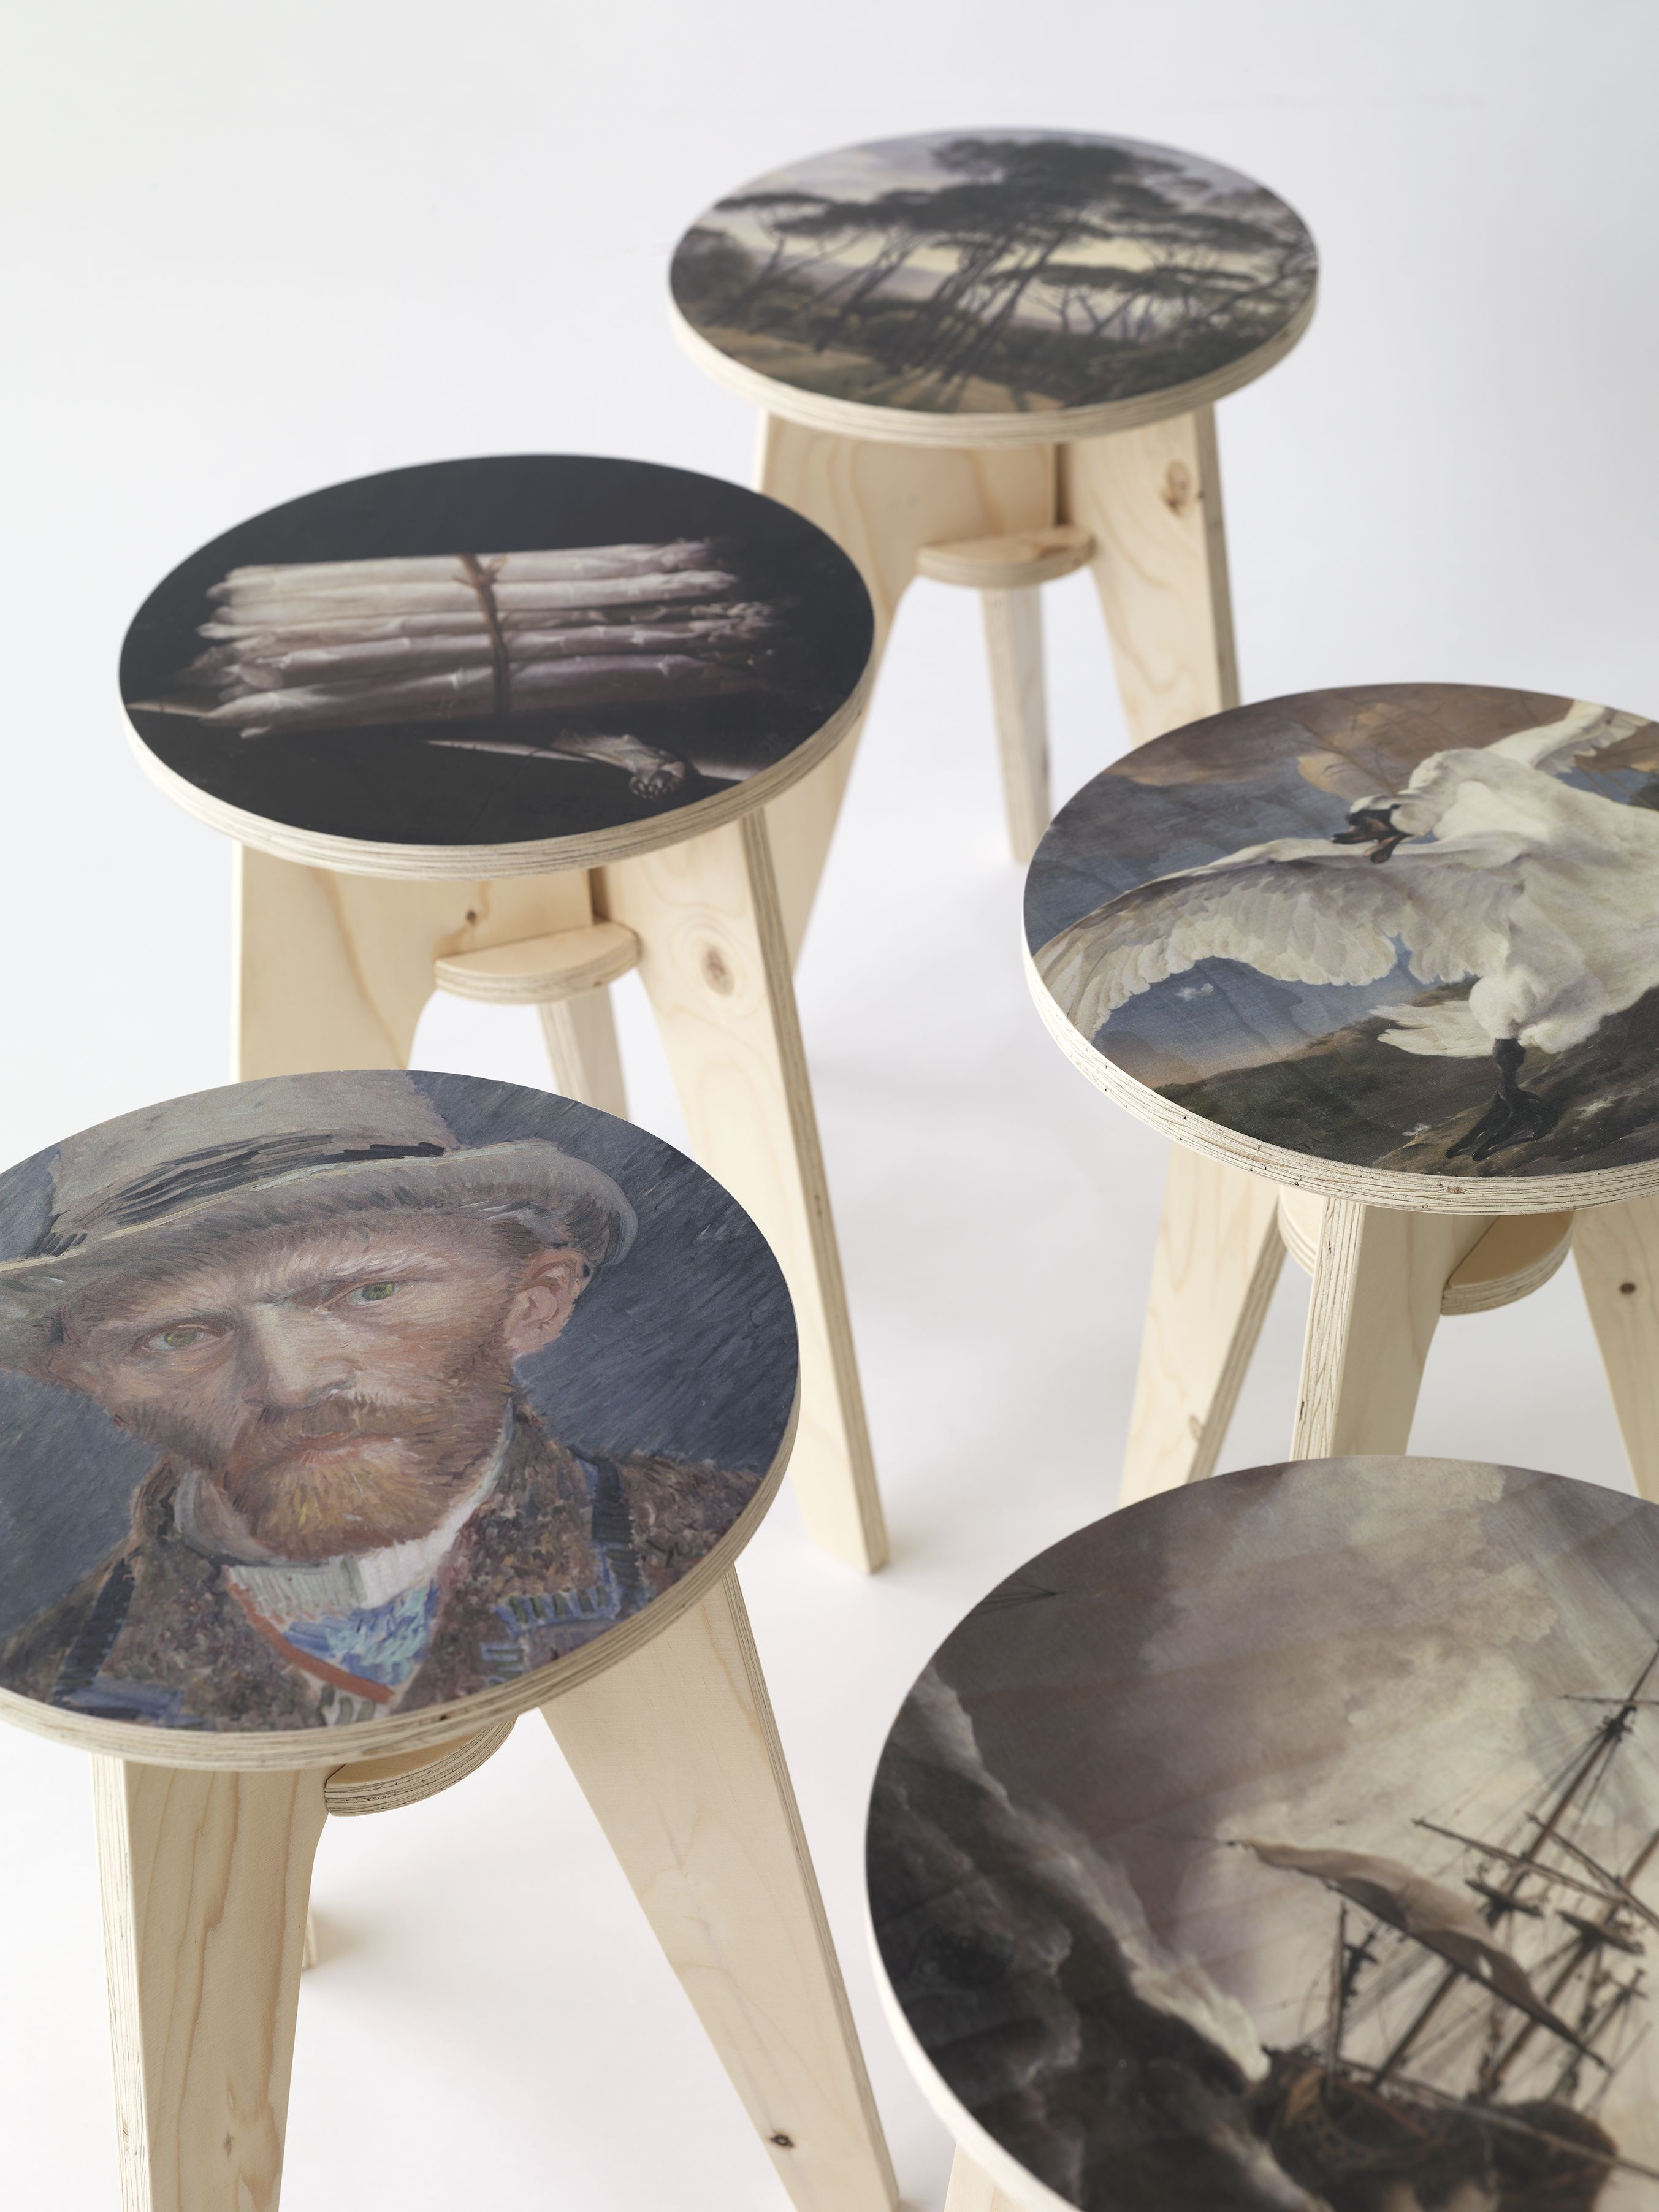 Print Plywood Stool by Piet Hein Eek for NLXL LAB is introduced at Dutch Design Week Eindhoven. Available in 10 prints, designed and manufactured by Piet Hein Eek. Artwork courtesy of Rijksmuseum Amsterdam. #pietheineek #rijksmuseum #plywood #stool #nlxl #nlxllab #amsterdam #printstool